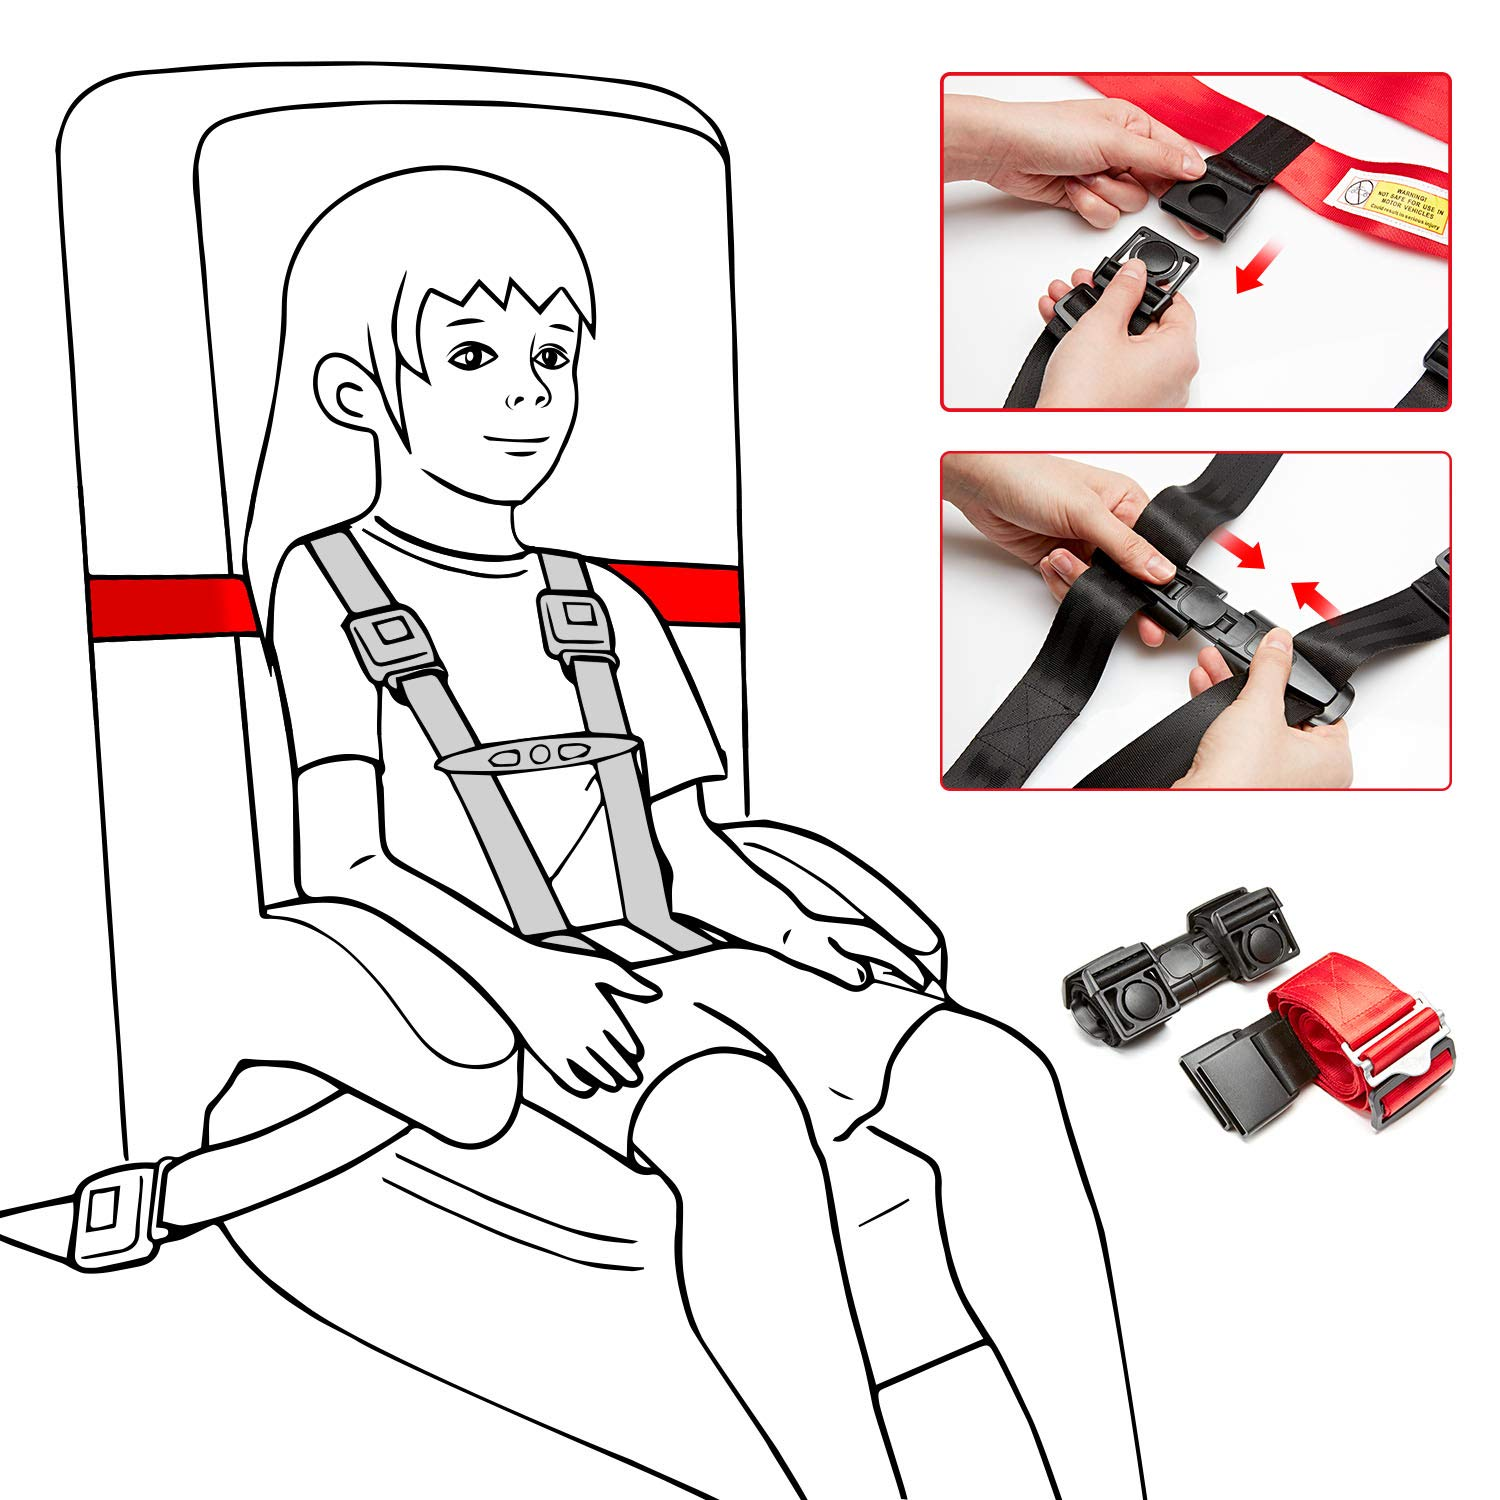 Child Safety Harness Airplane Travel Clip Strap, Travel Harness Safety System Approved by FAA, Airplane Safety Travel Harness for Baby, Toddlers & Kids by Farochy (Image #5)